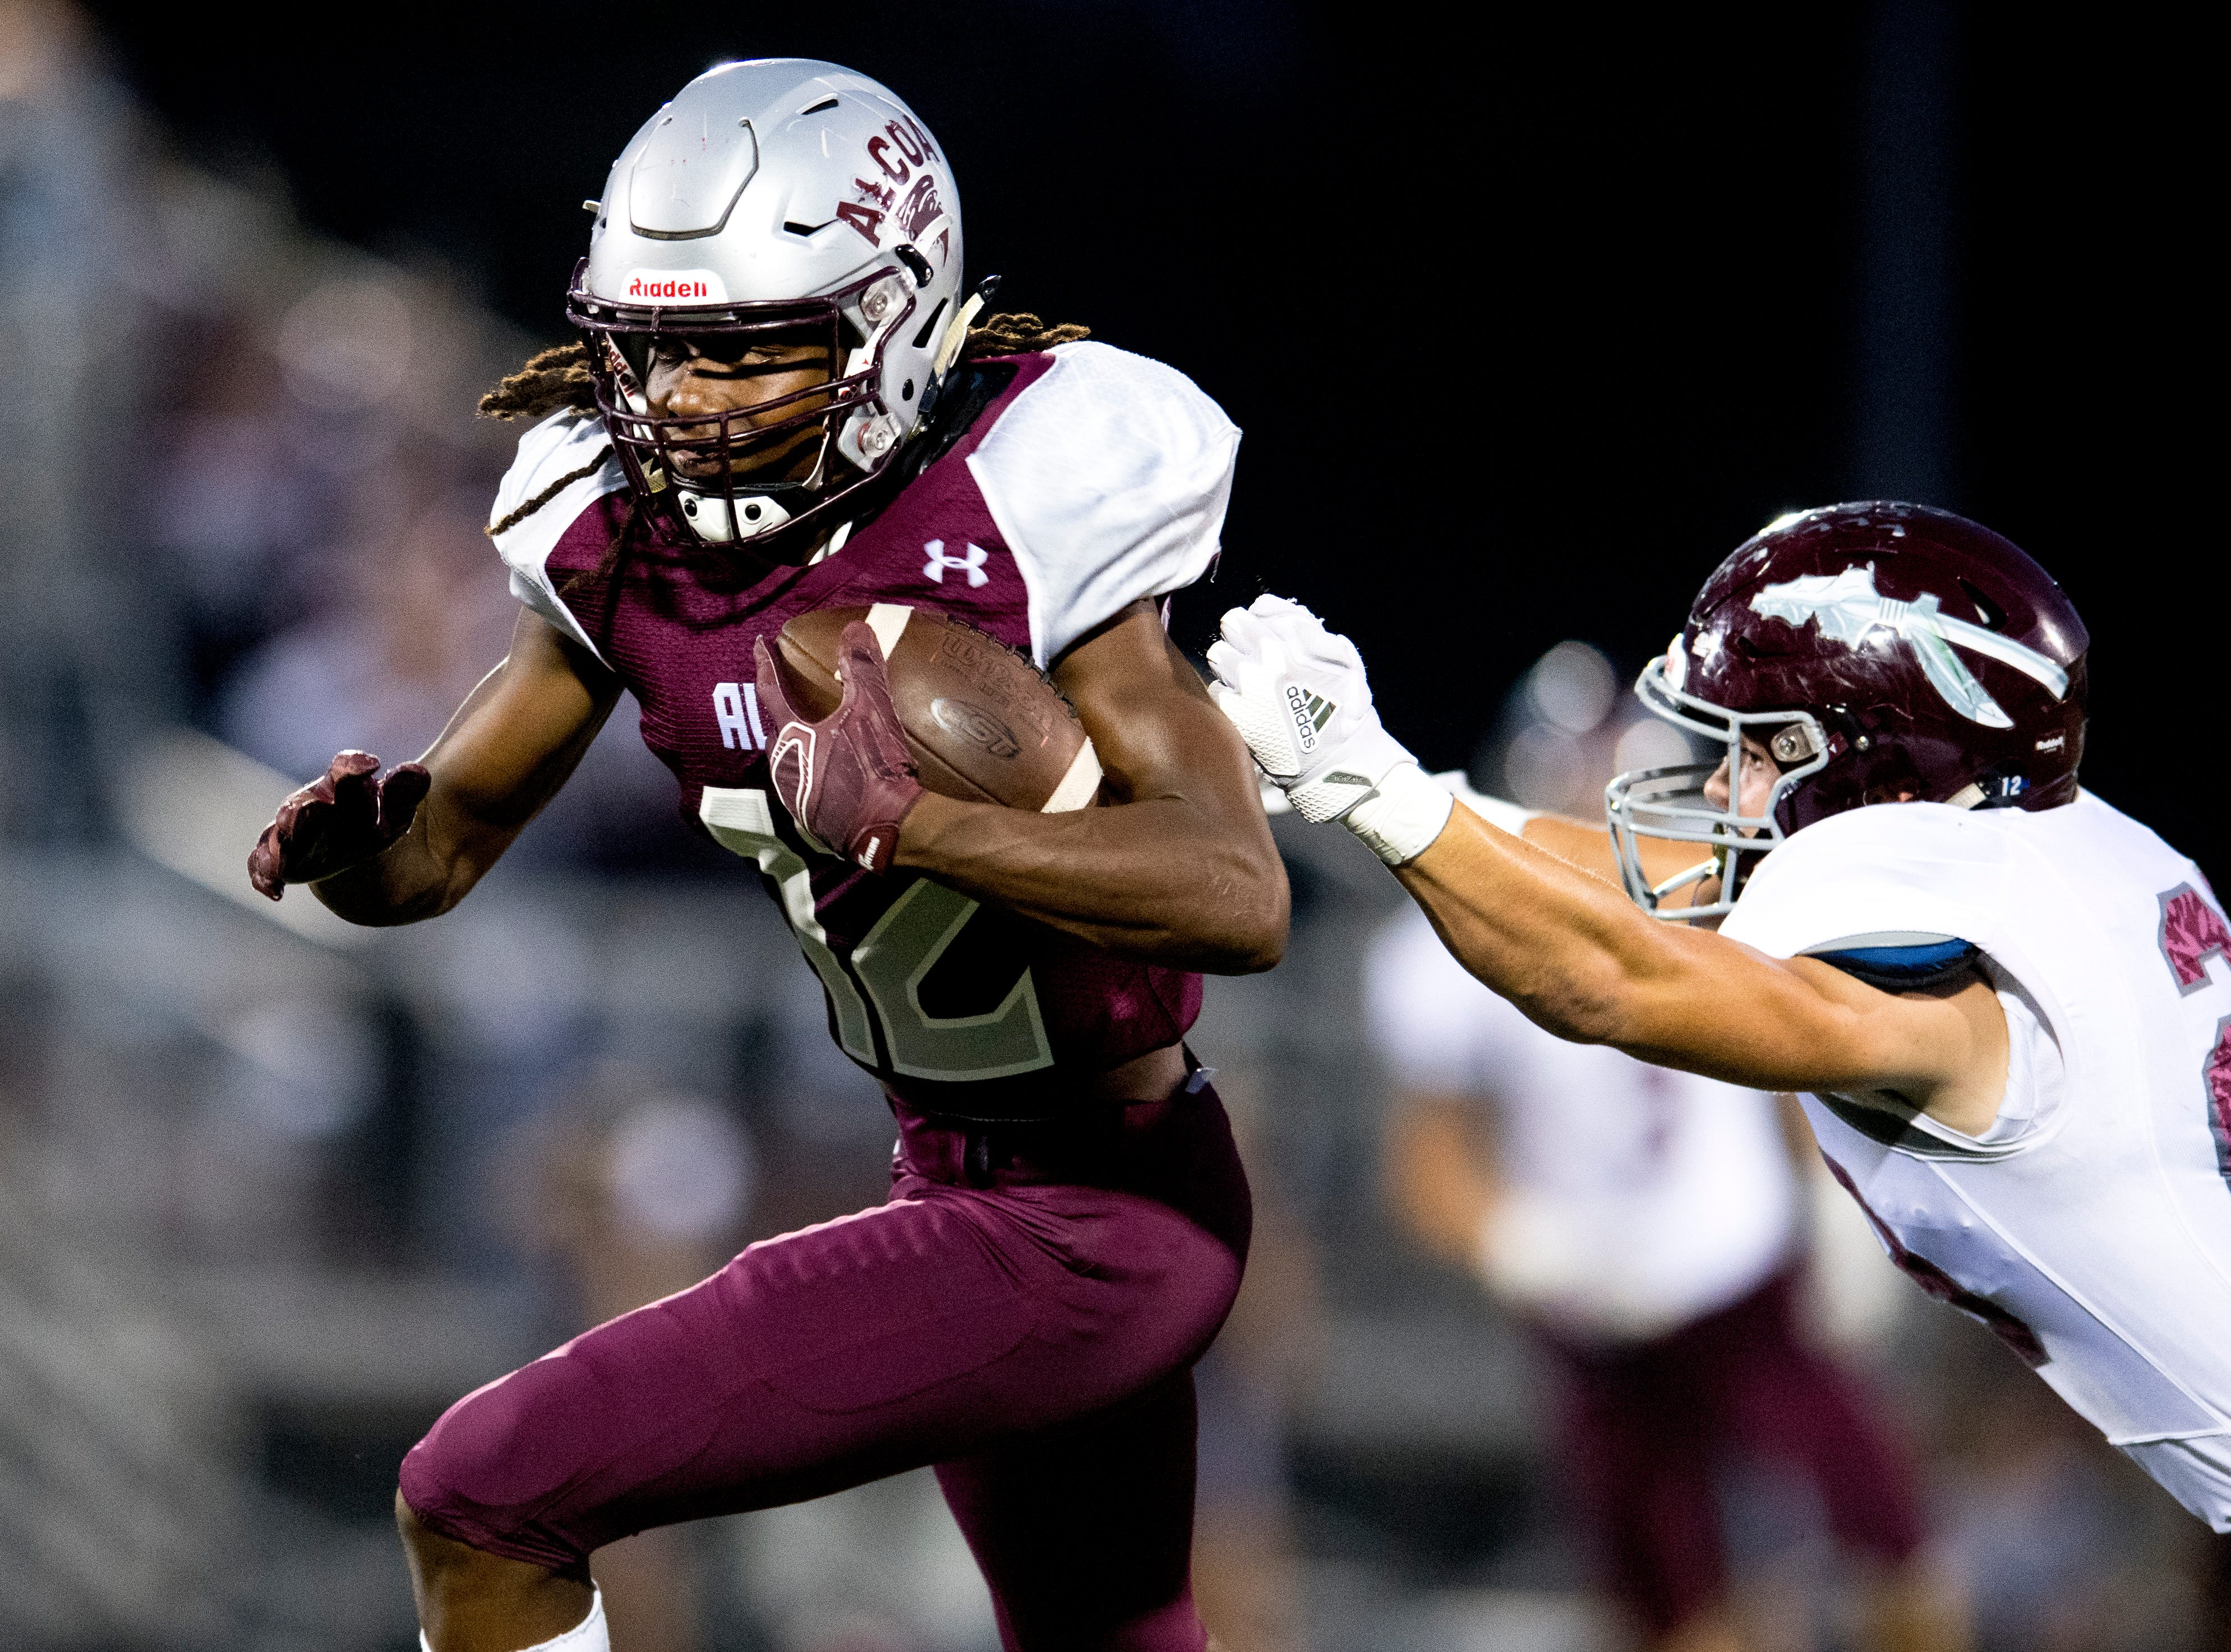 Alcoa's Isiah Cox (12) runs with the ball as Dobyns-Bennett's Jackson Martin (29) defends during a game between Alcoa and Dobyns-Bennett at Alcoa High School in Alcoa, Tennessee on Friday, September 21, 2018.